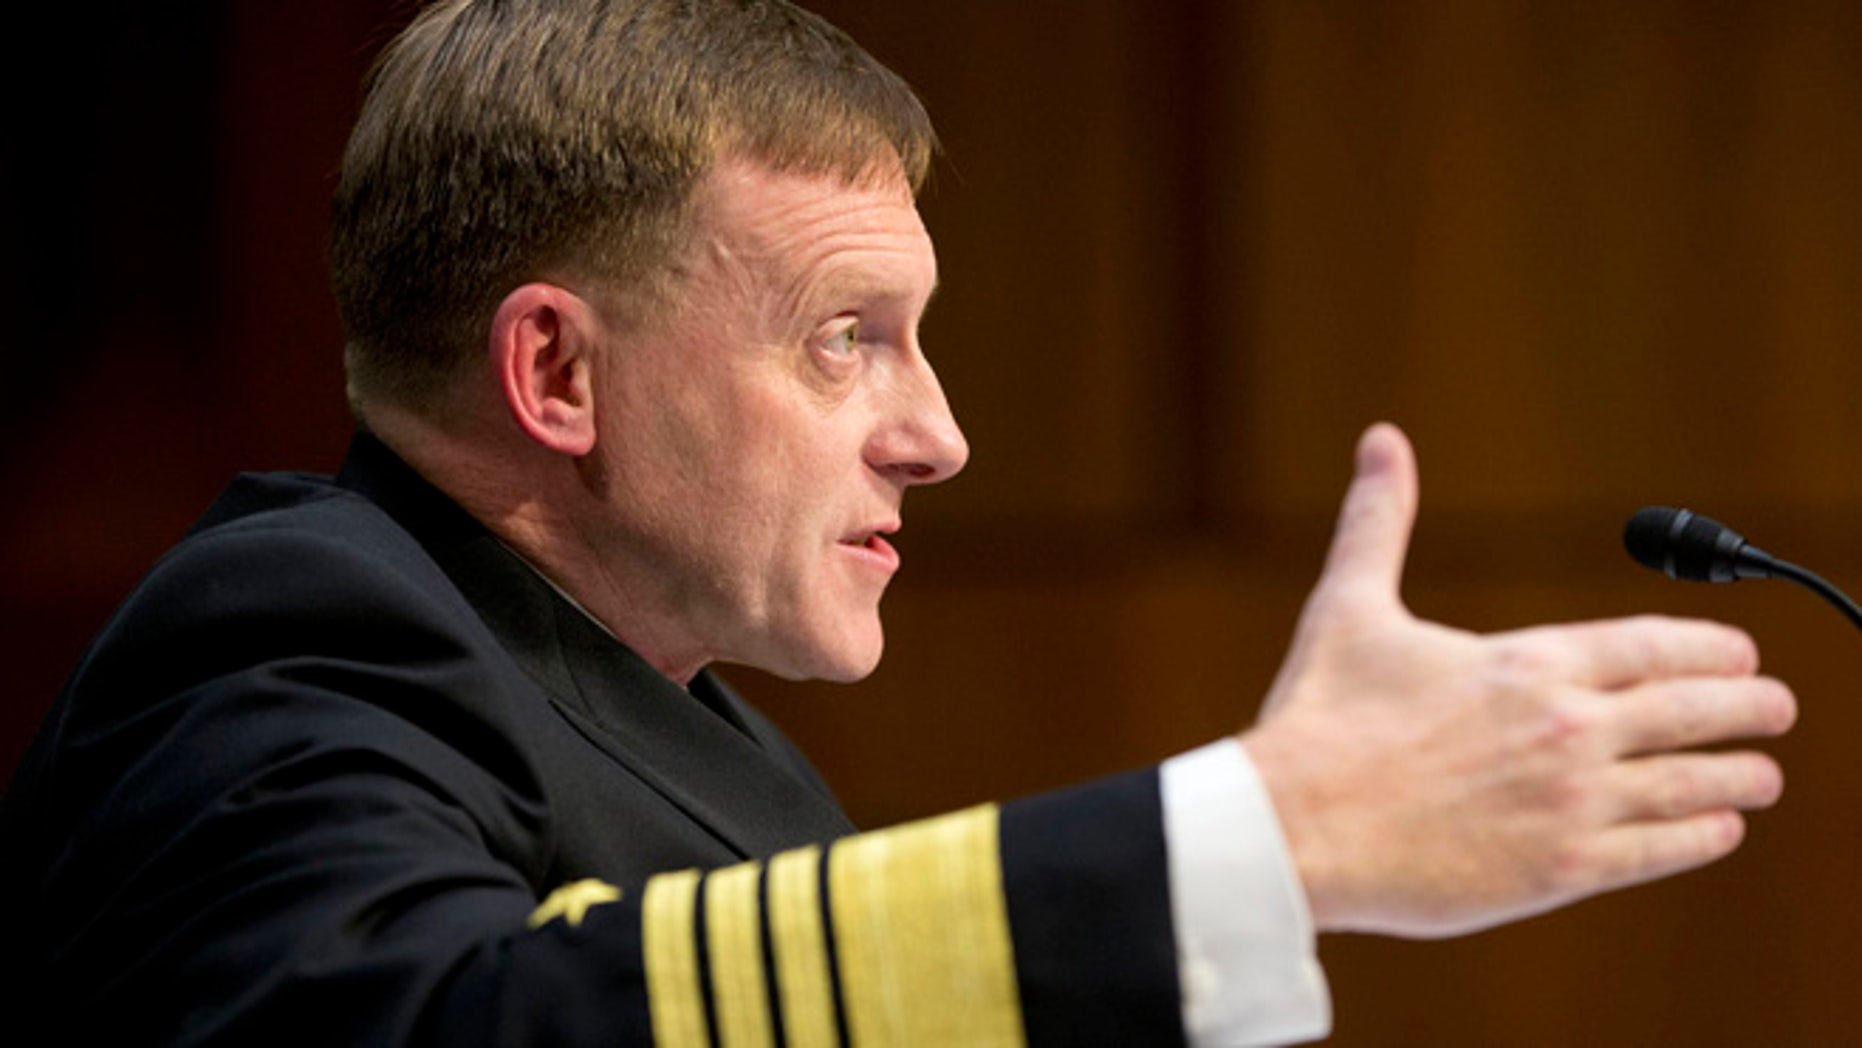 Sept. 24, 2015: Director of the National Security Agency (NSA) Adm. Michael Rogers testifies on Capitol Hill before the Senate Intelligence Committee. (AP)